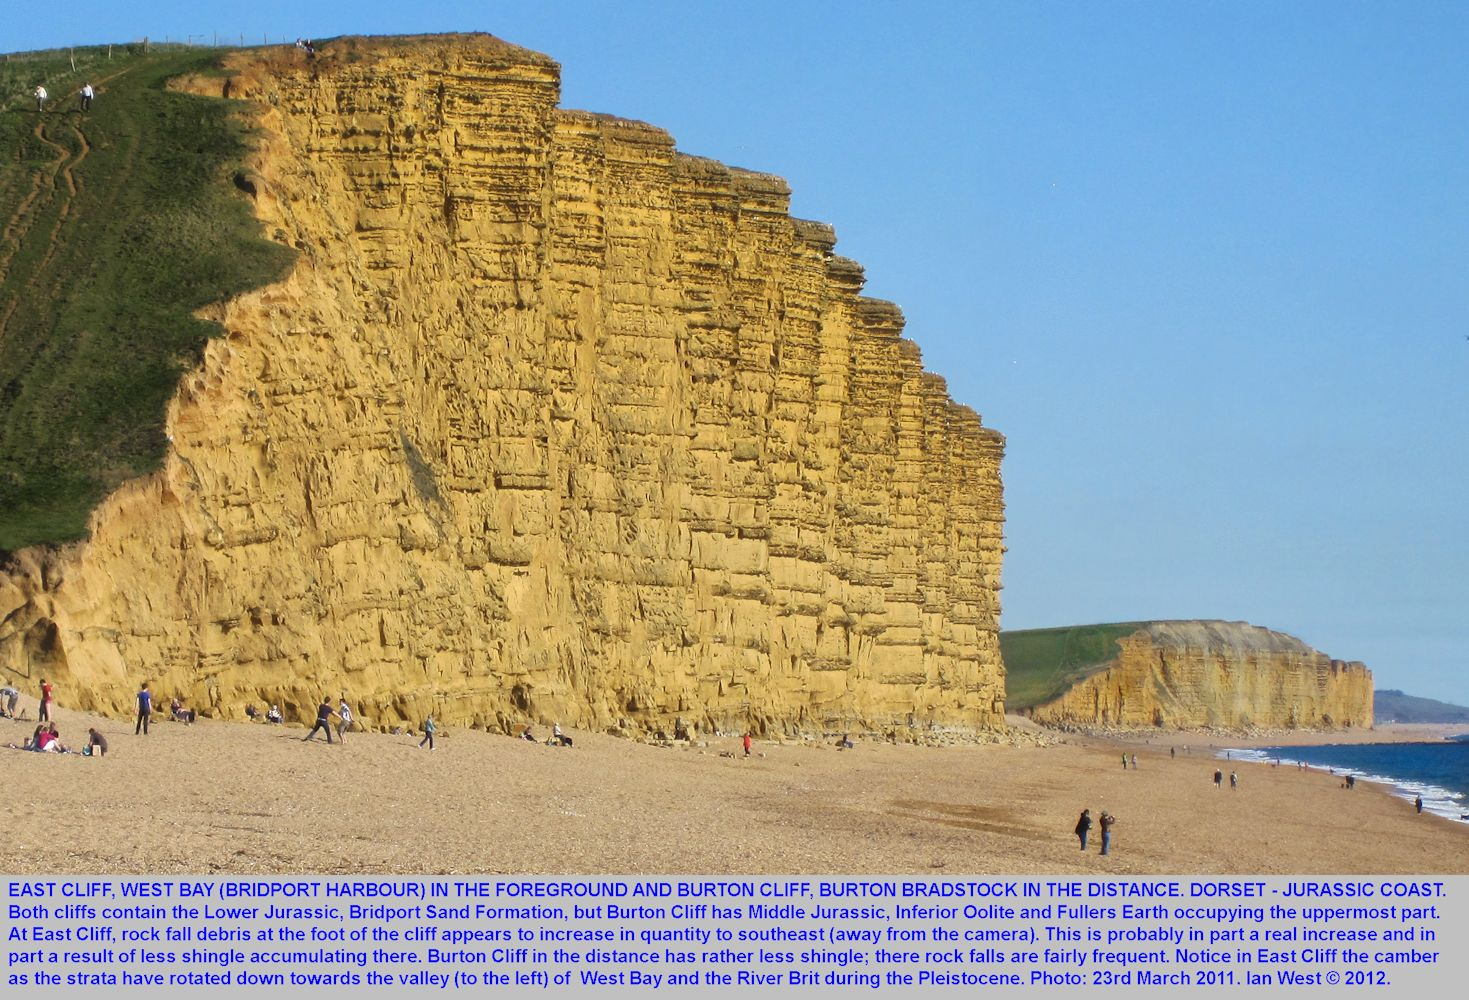 A view of East Cliff, West Bay with Burton Cliff, Burton Bradstock, Dorset, beyond, 2011